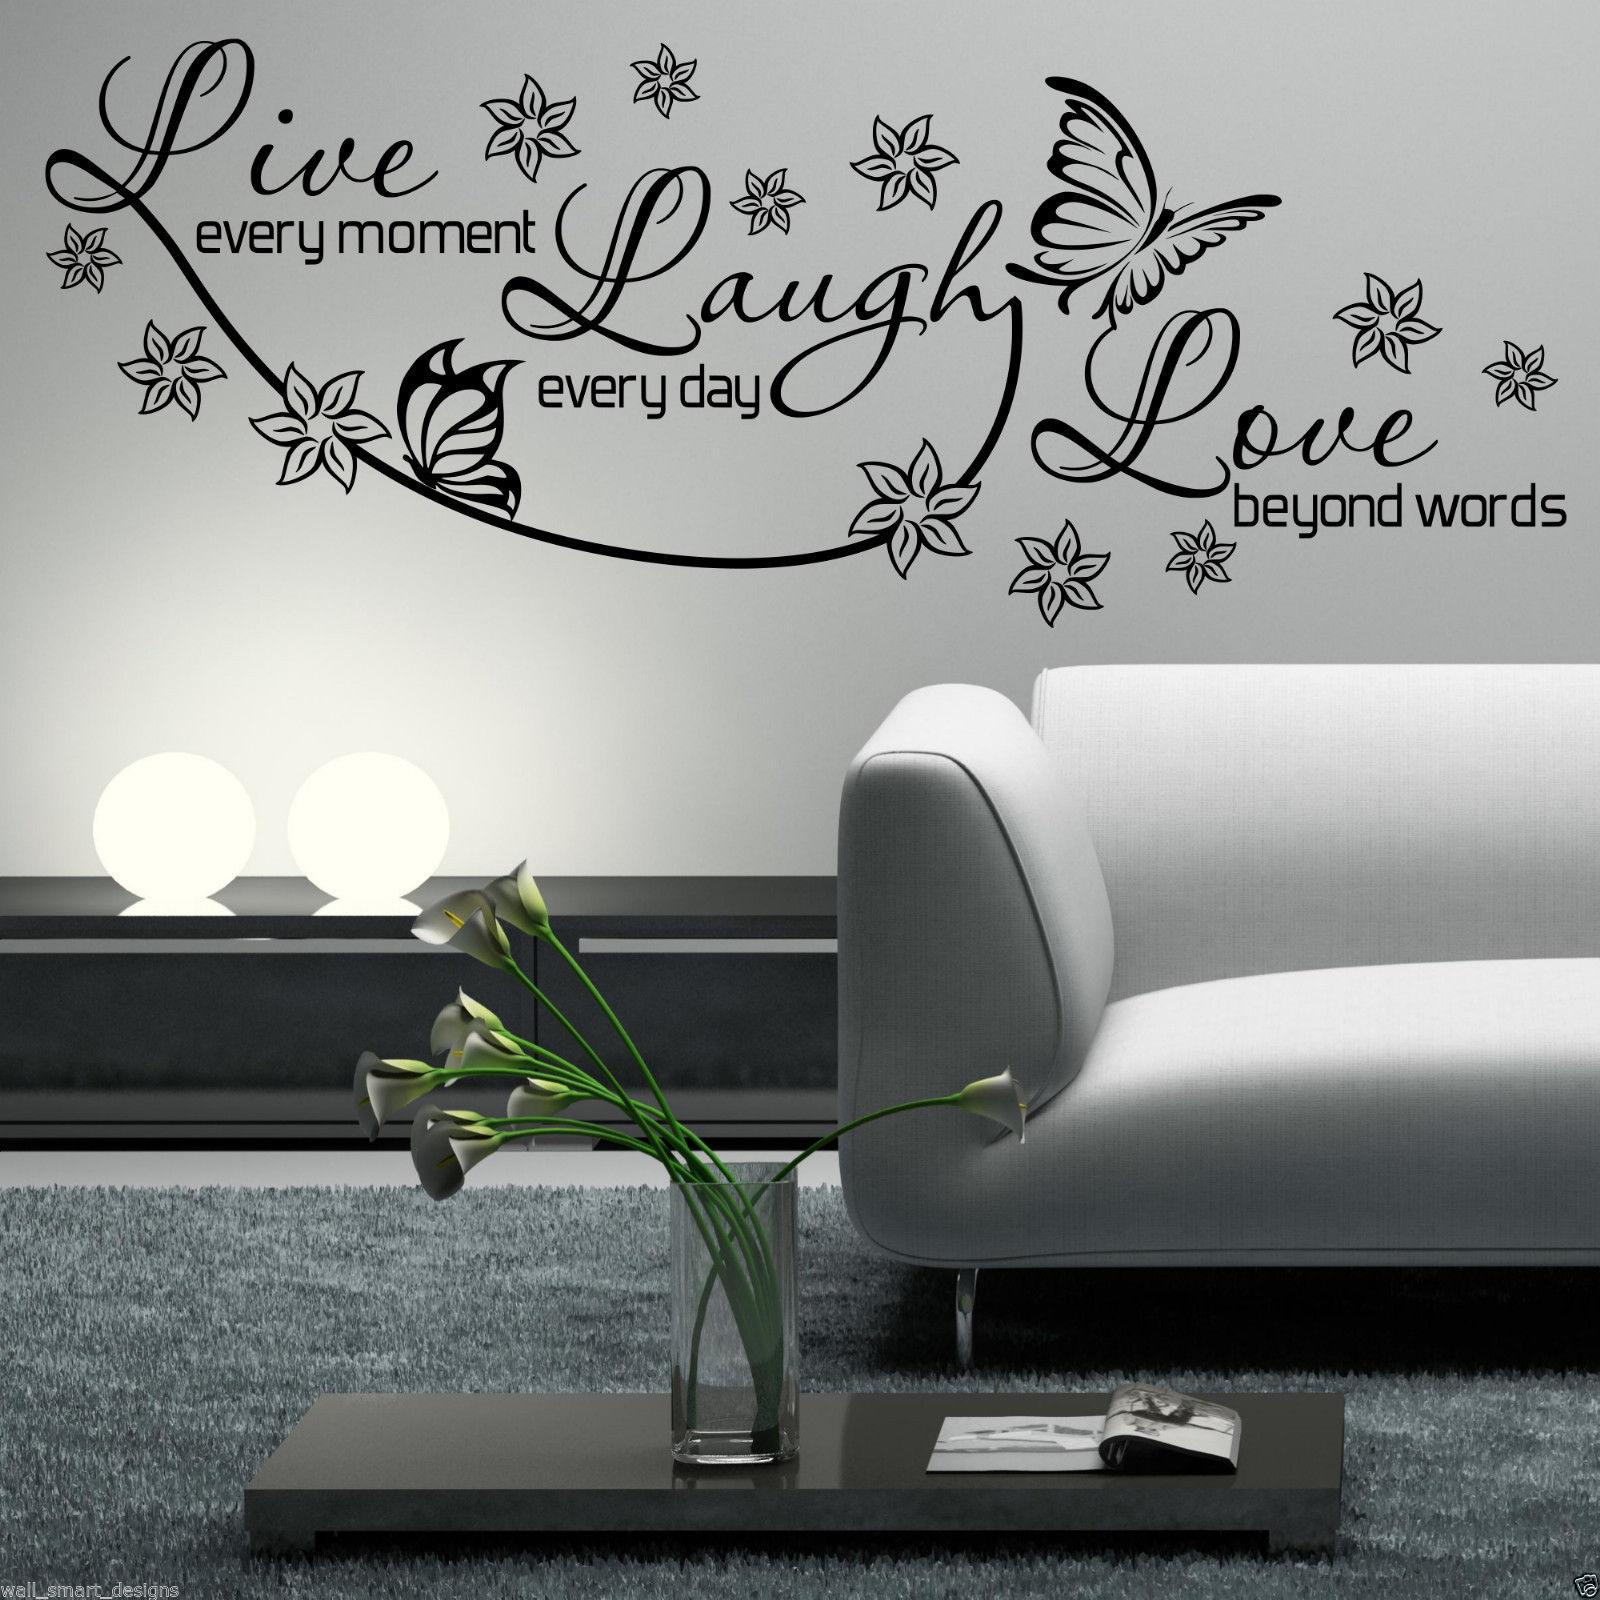 live laugh love wall art sticker lounge room quote decal light blue bathroom live laugh love wall sticker live